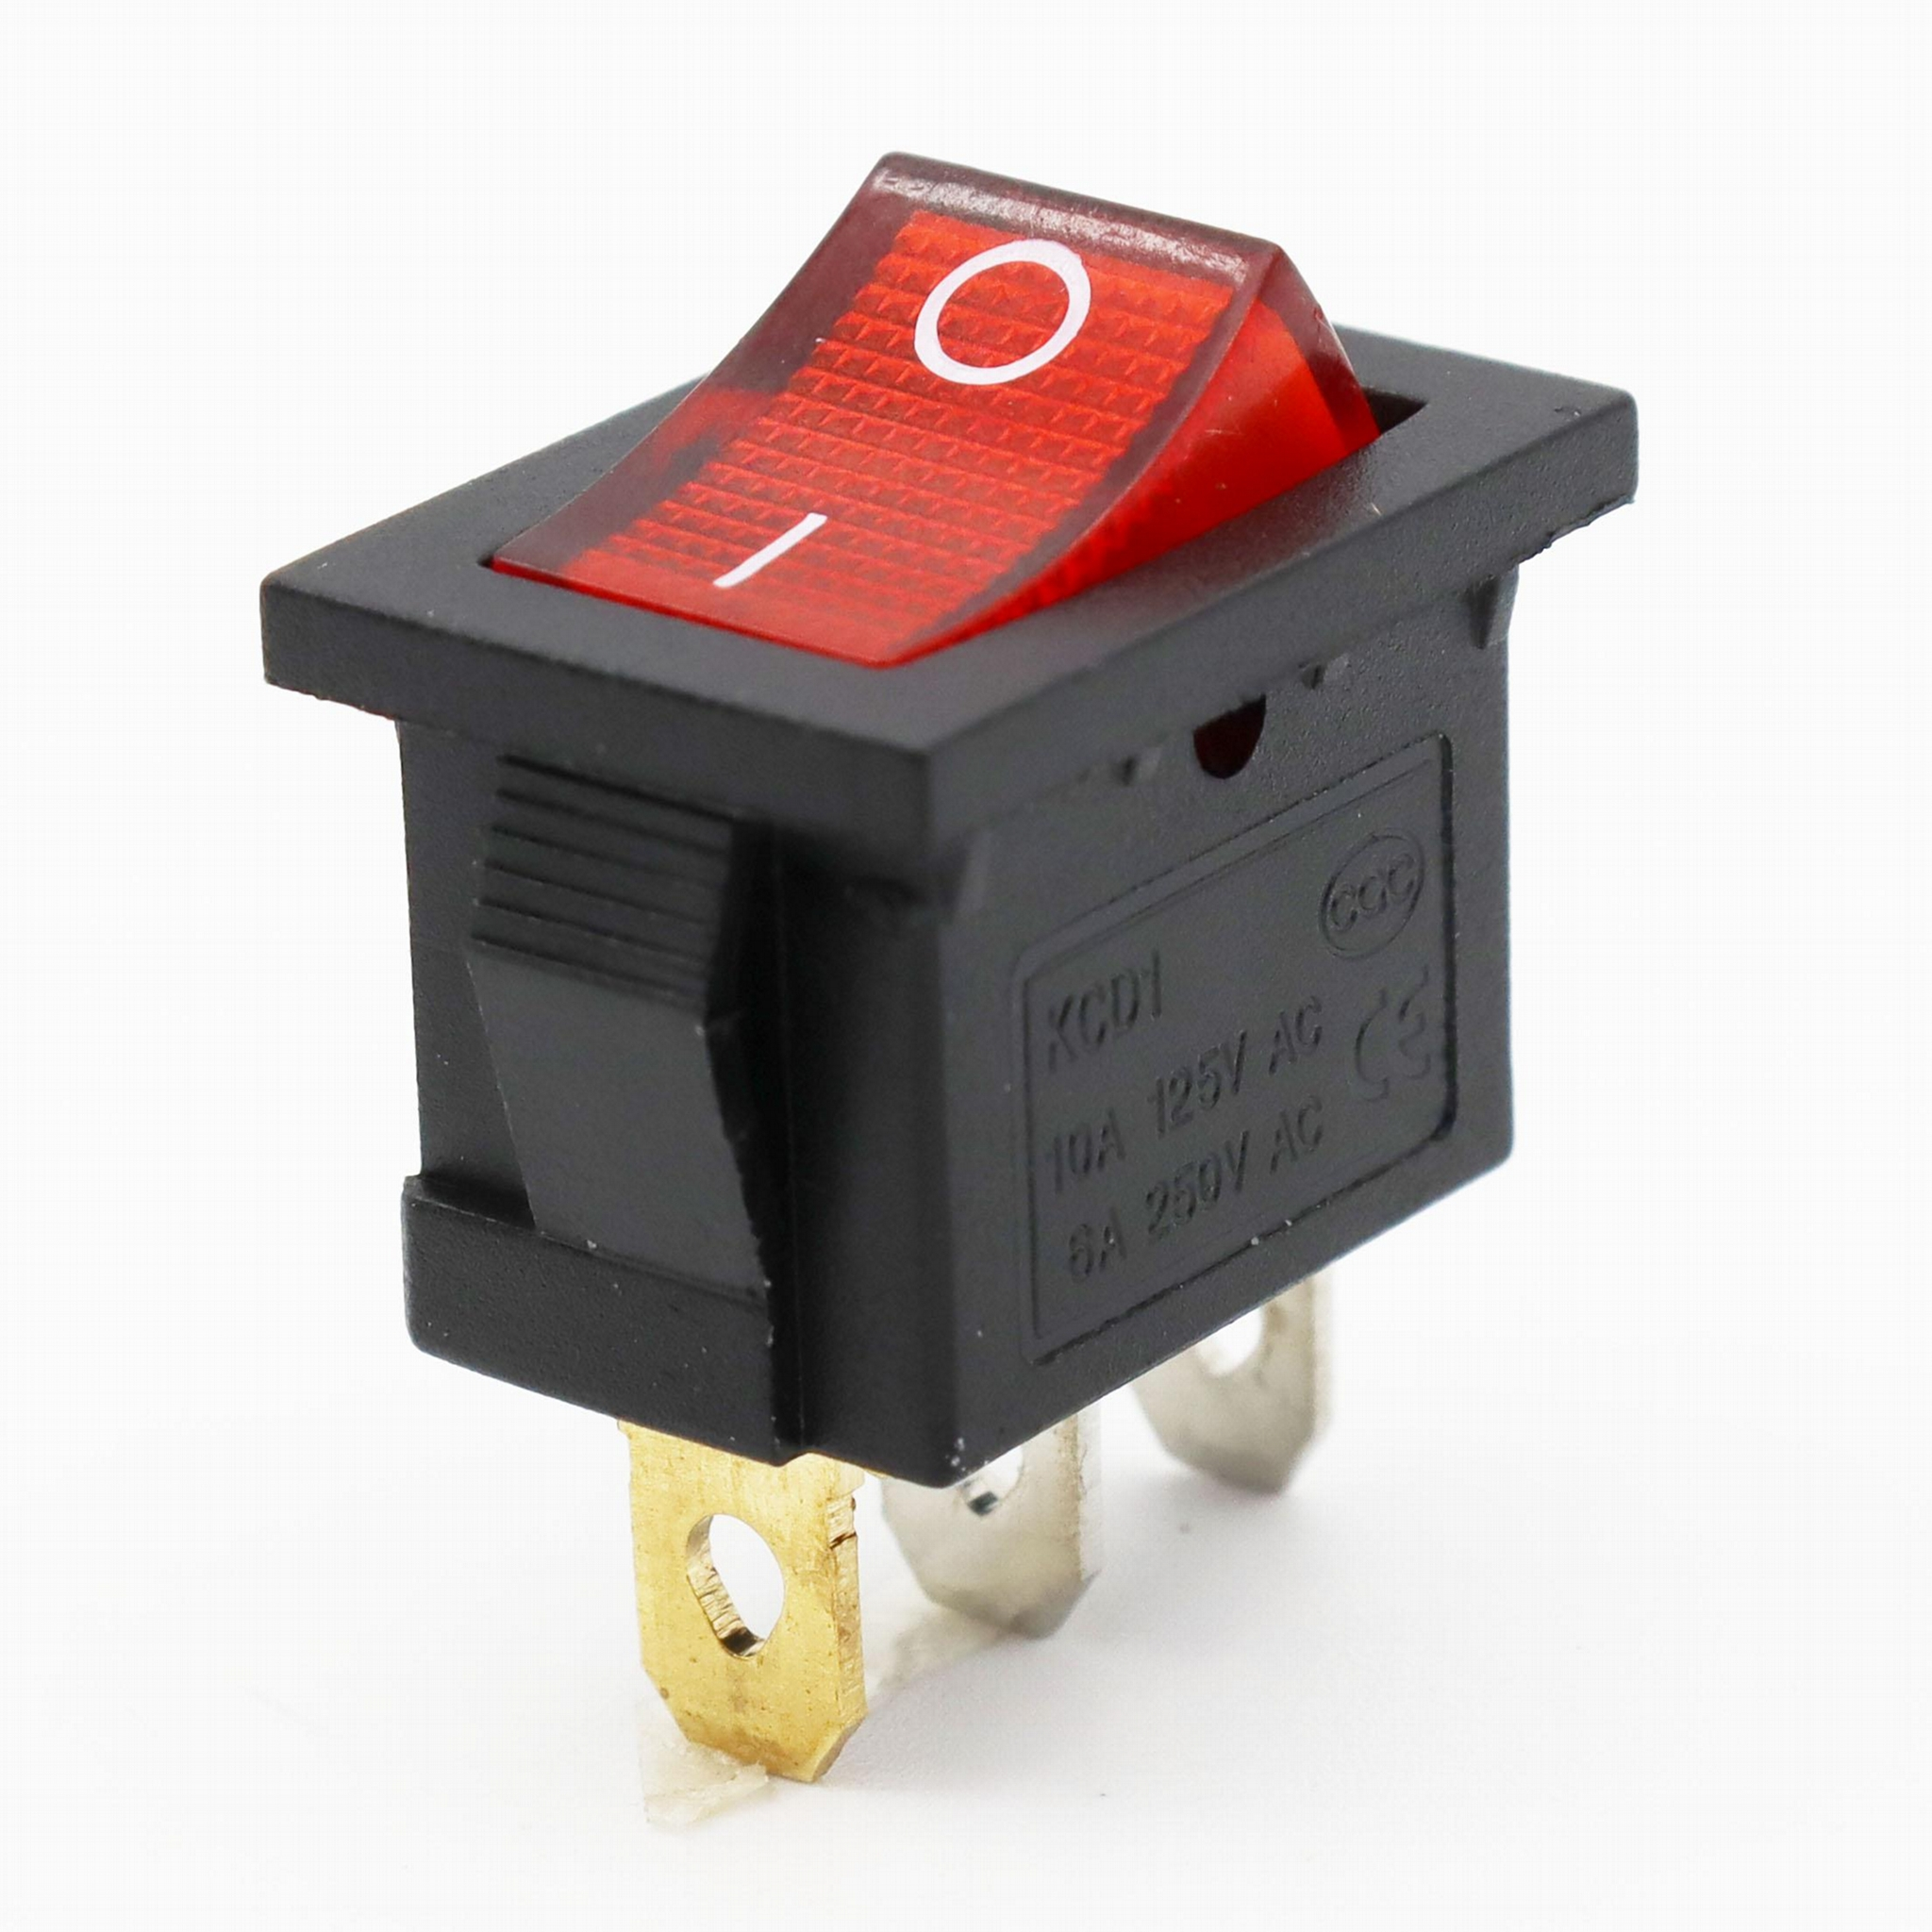 KCD1-101-1 21*15mm 2pins rocker switches 2